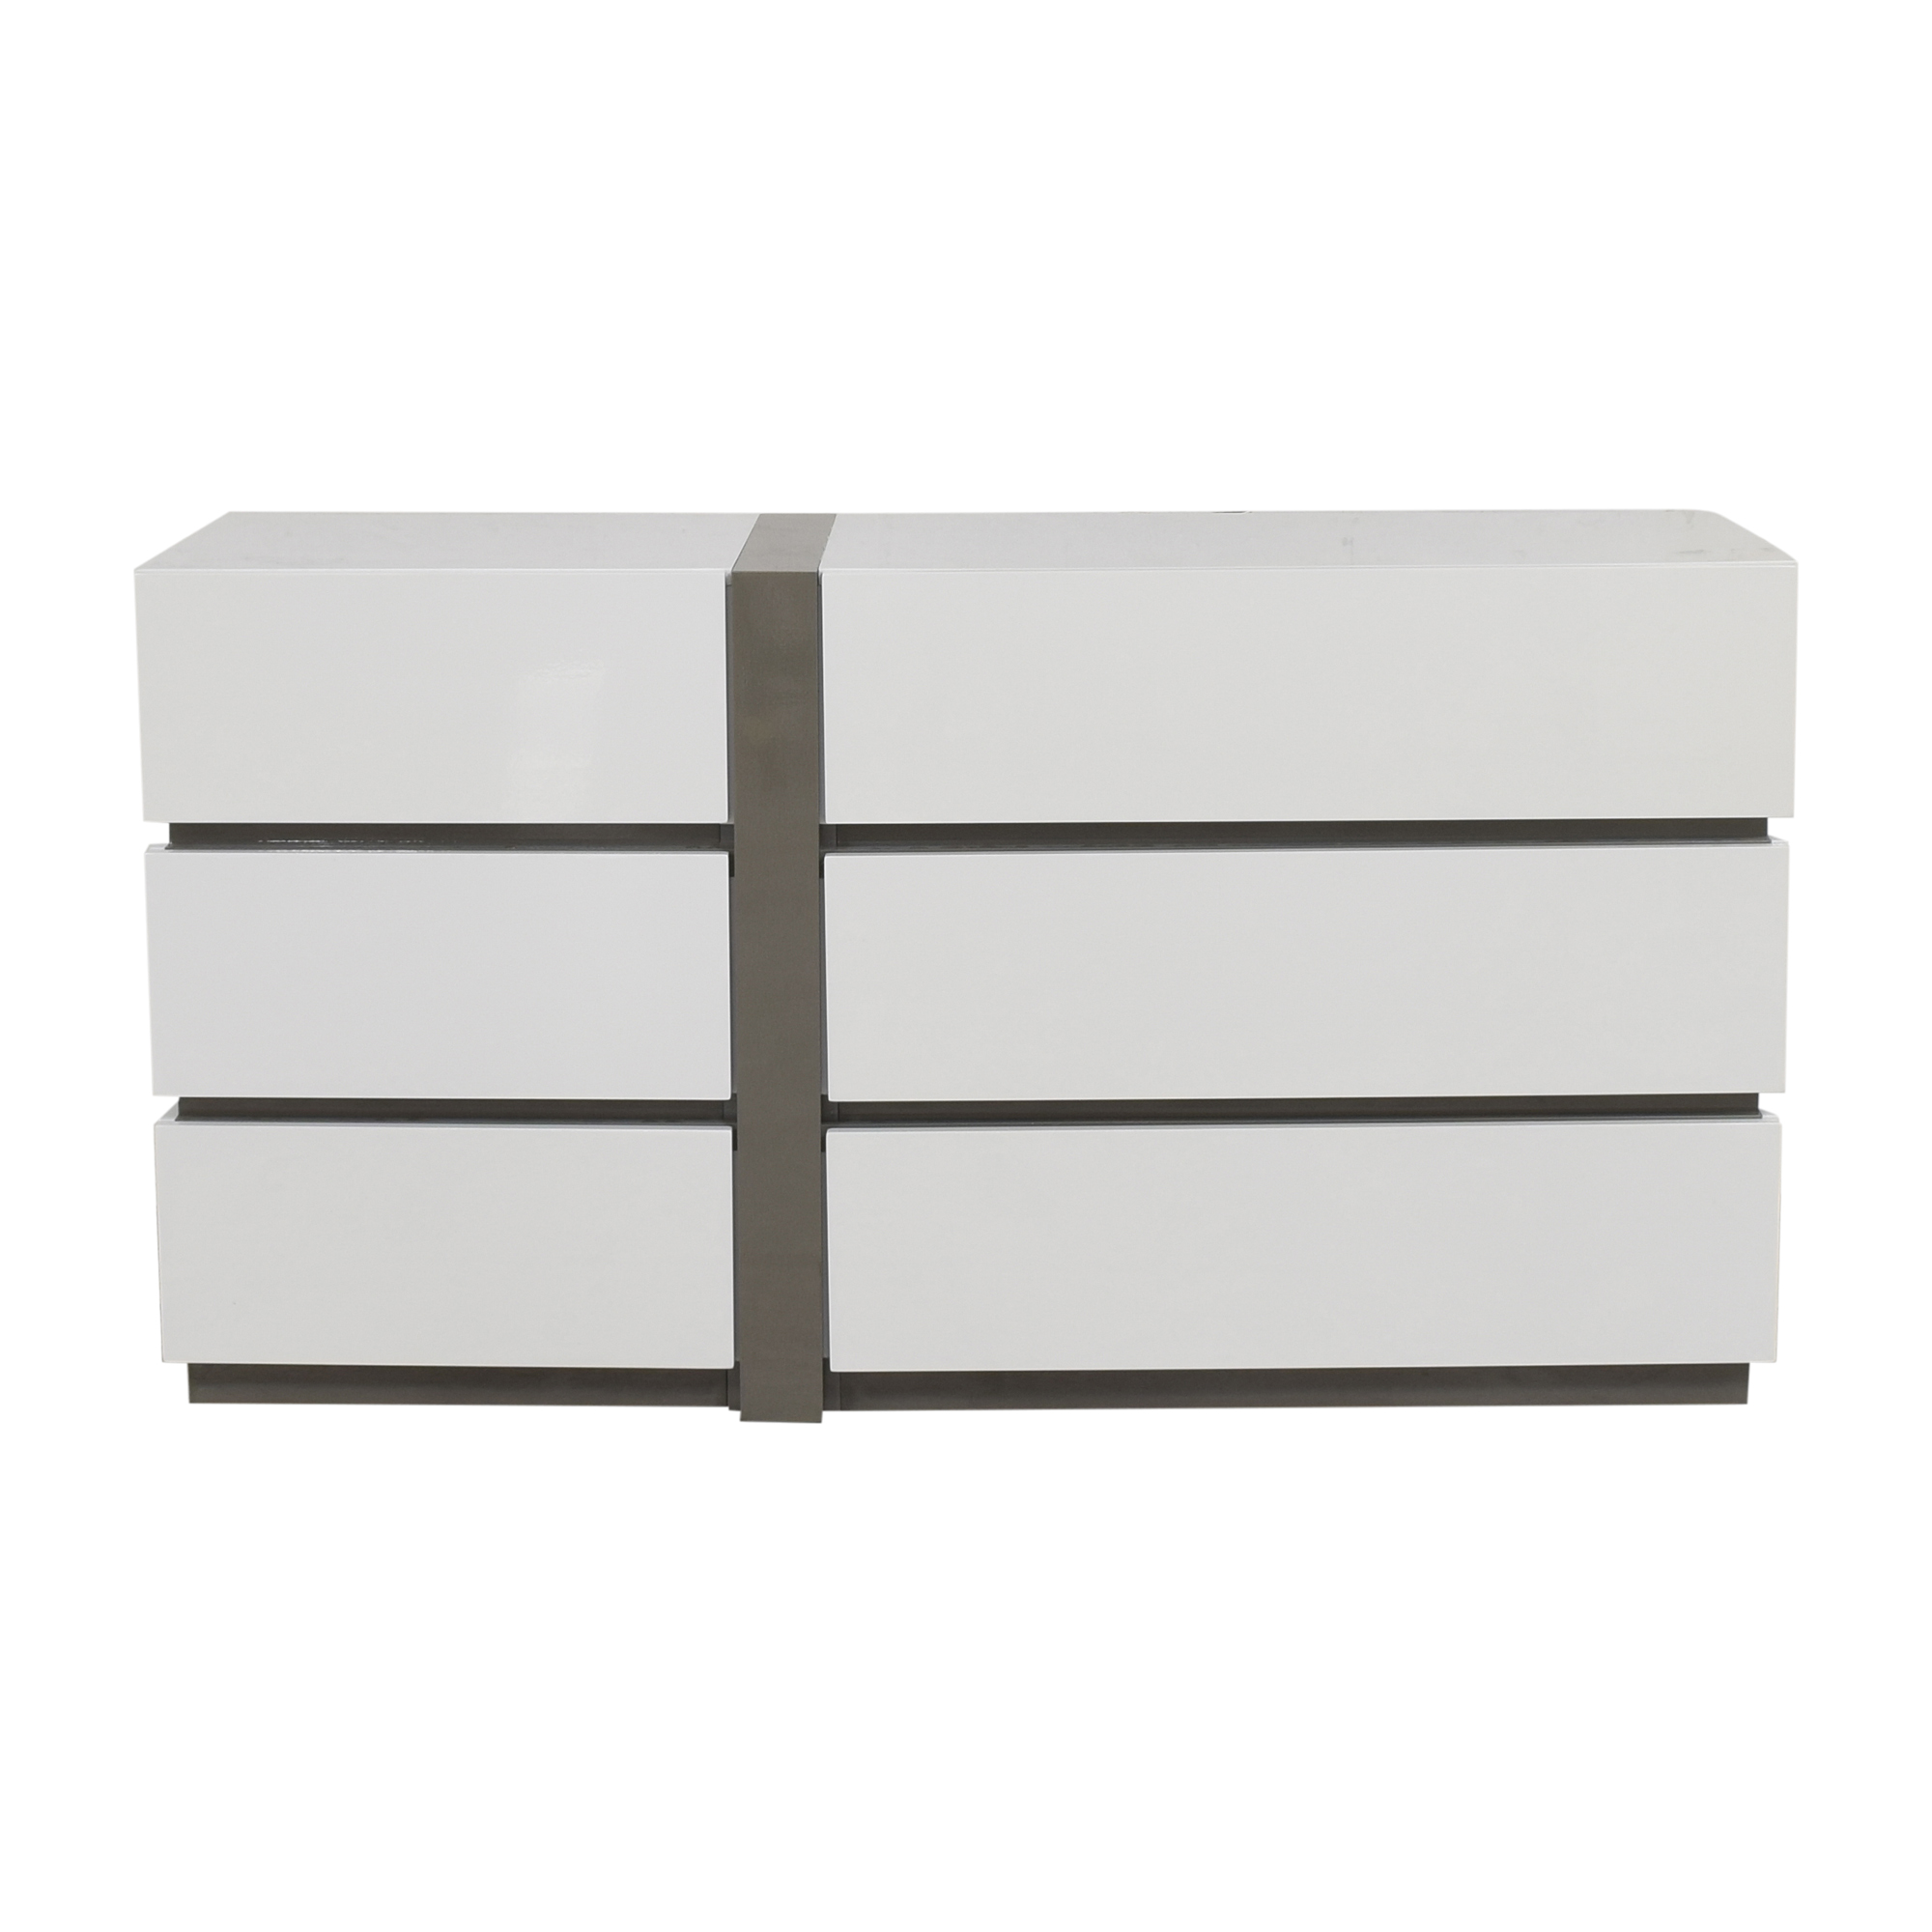 Chintaly Imports Chintaly Imports Manila Six Drawer Dresser discount